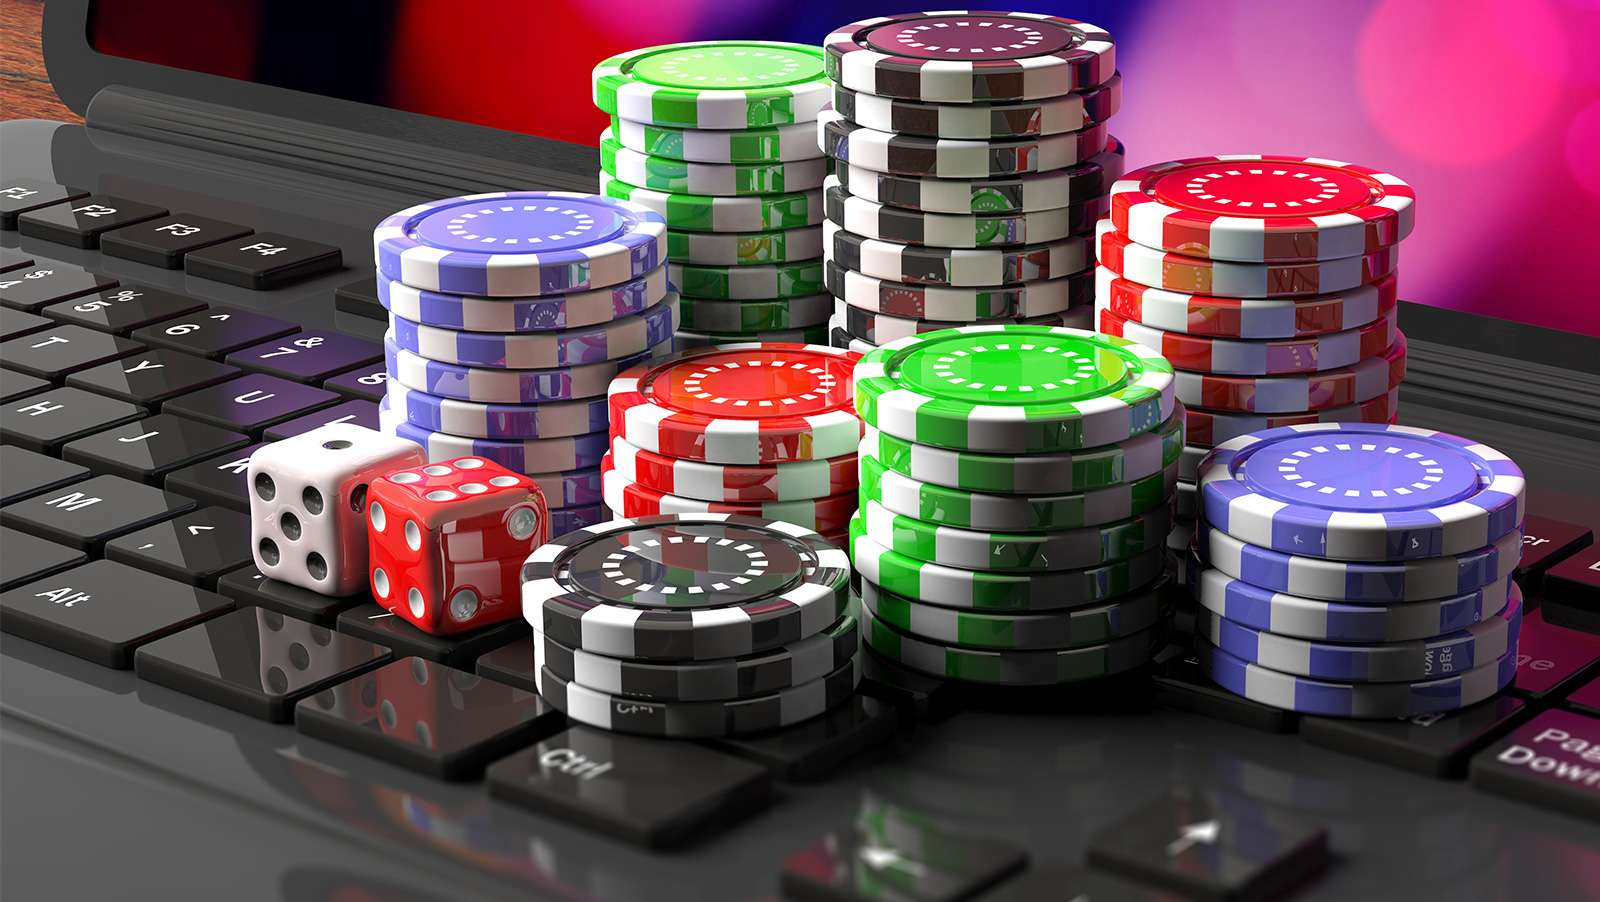 Earn real cash prizes on some online games using your luck